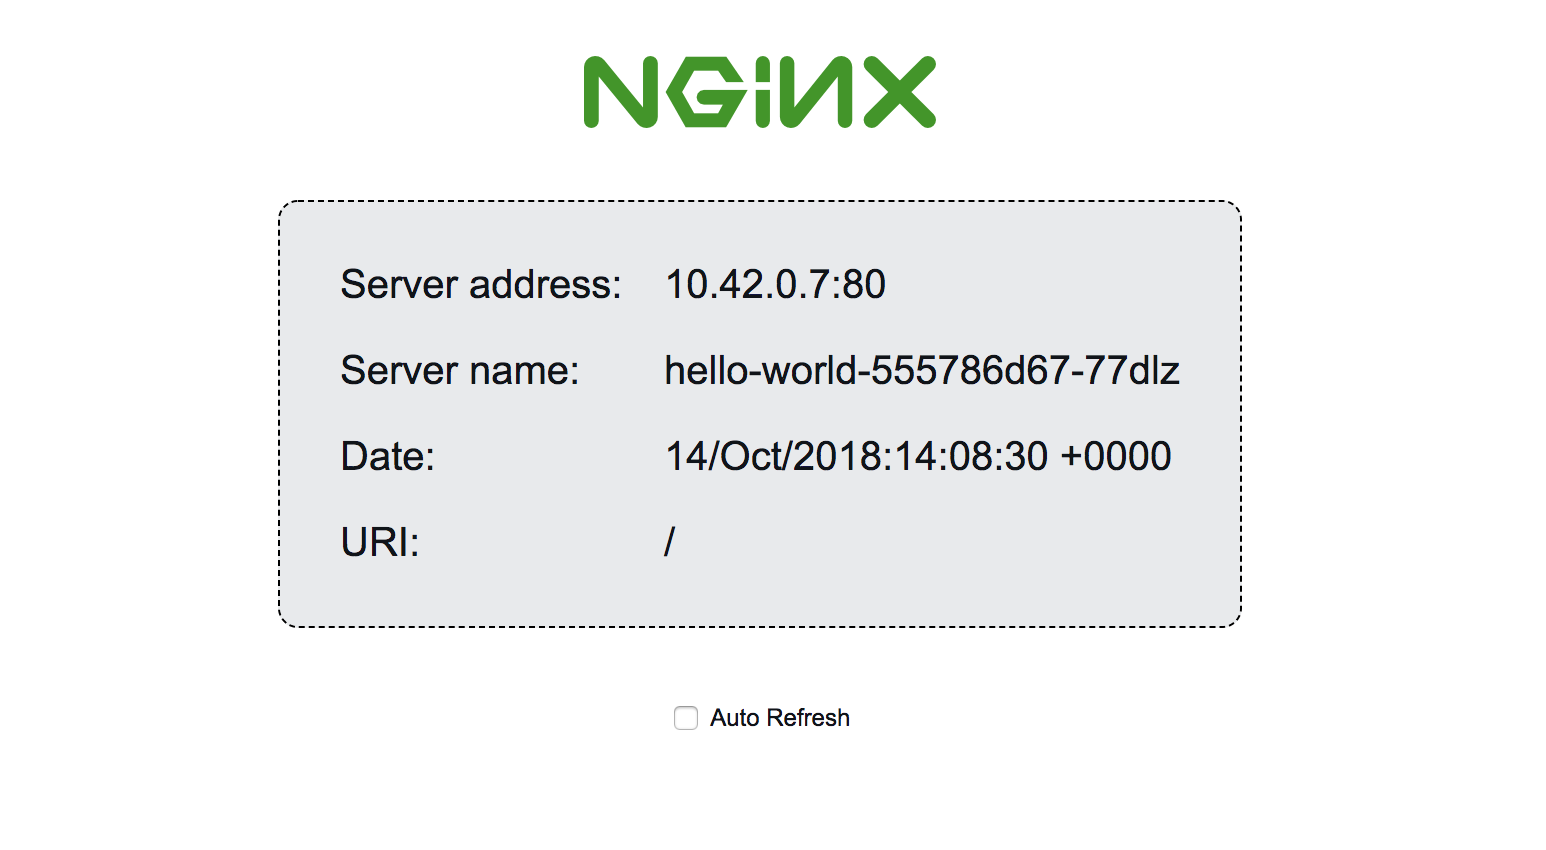 Server address, Server name, and other output from the running NGINX container